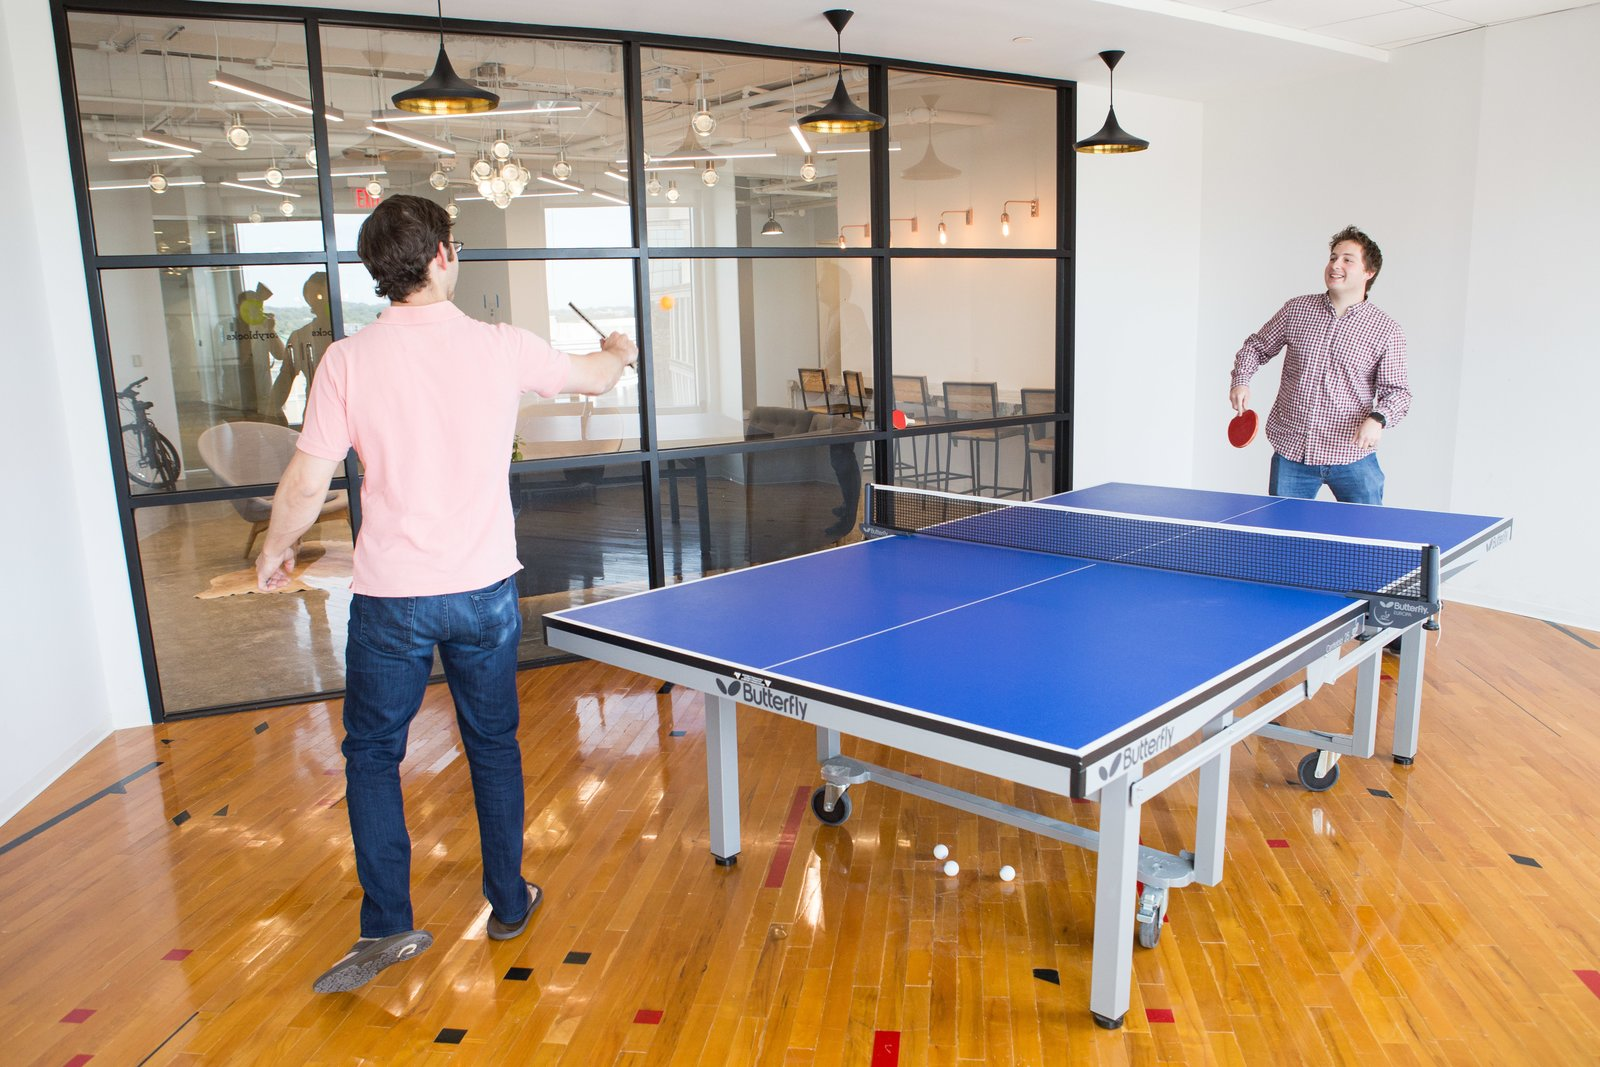 ping-pong-room-with-authentic-wood-gym-flooring.jpg